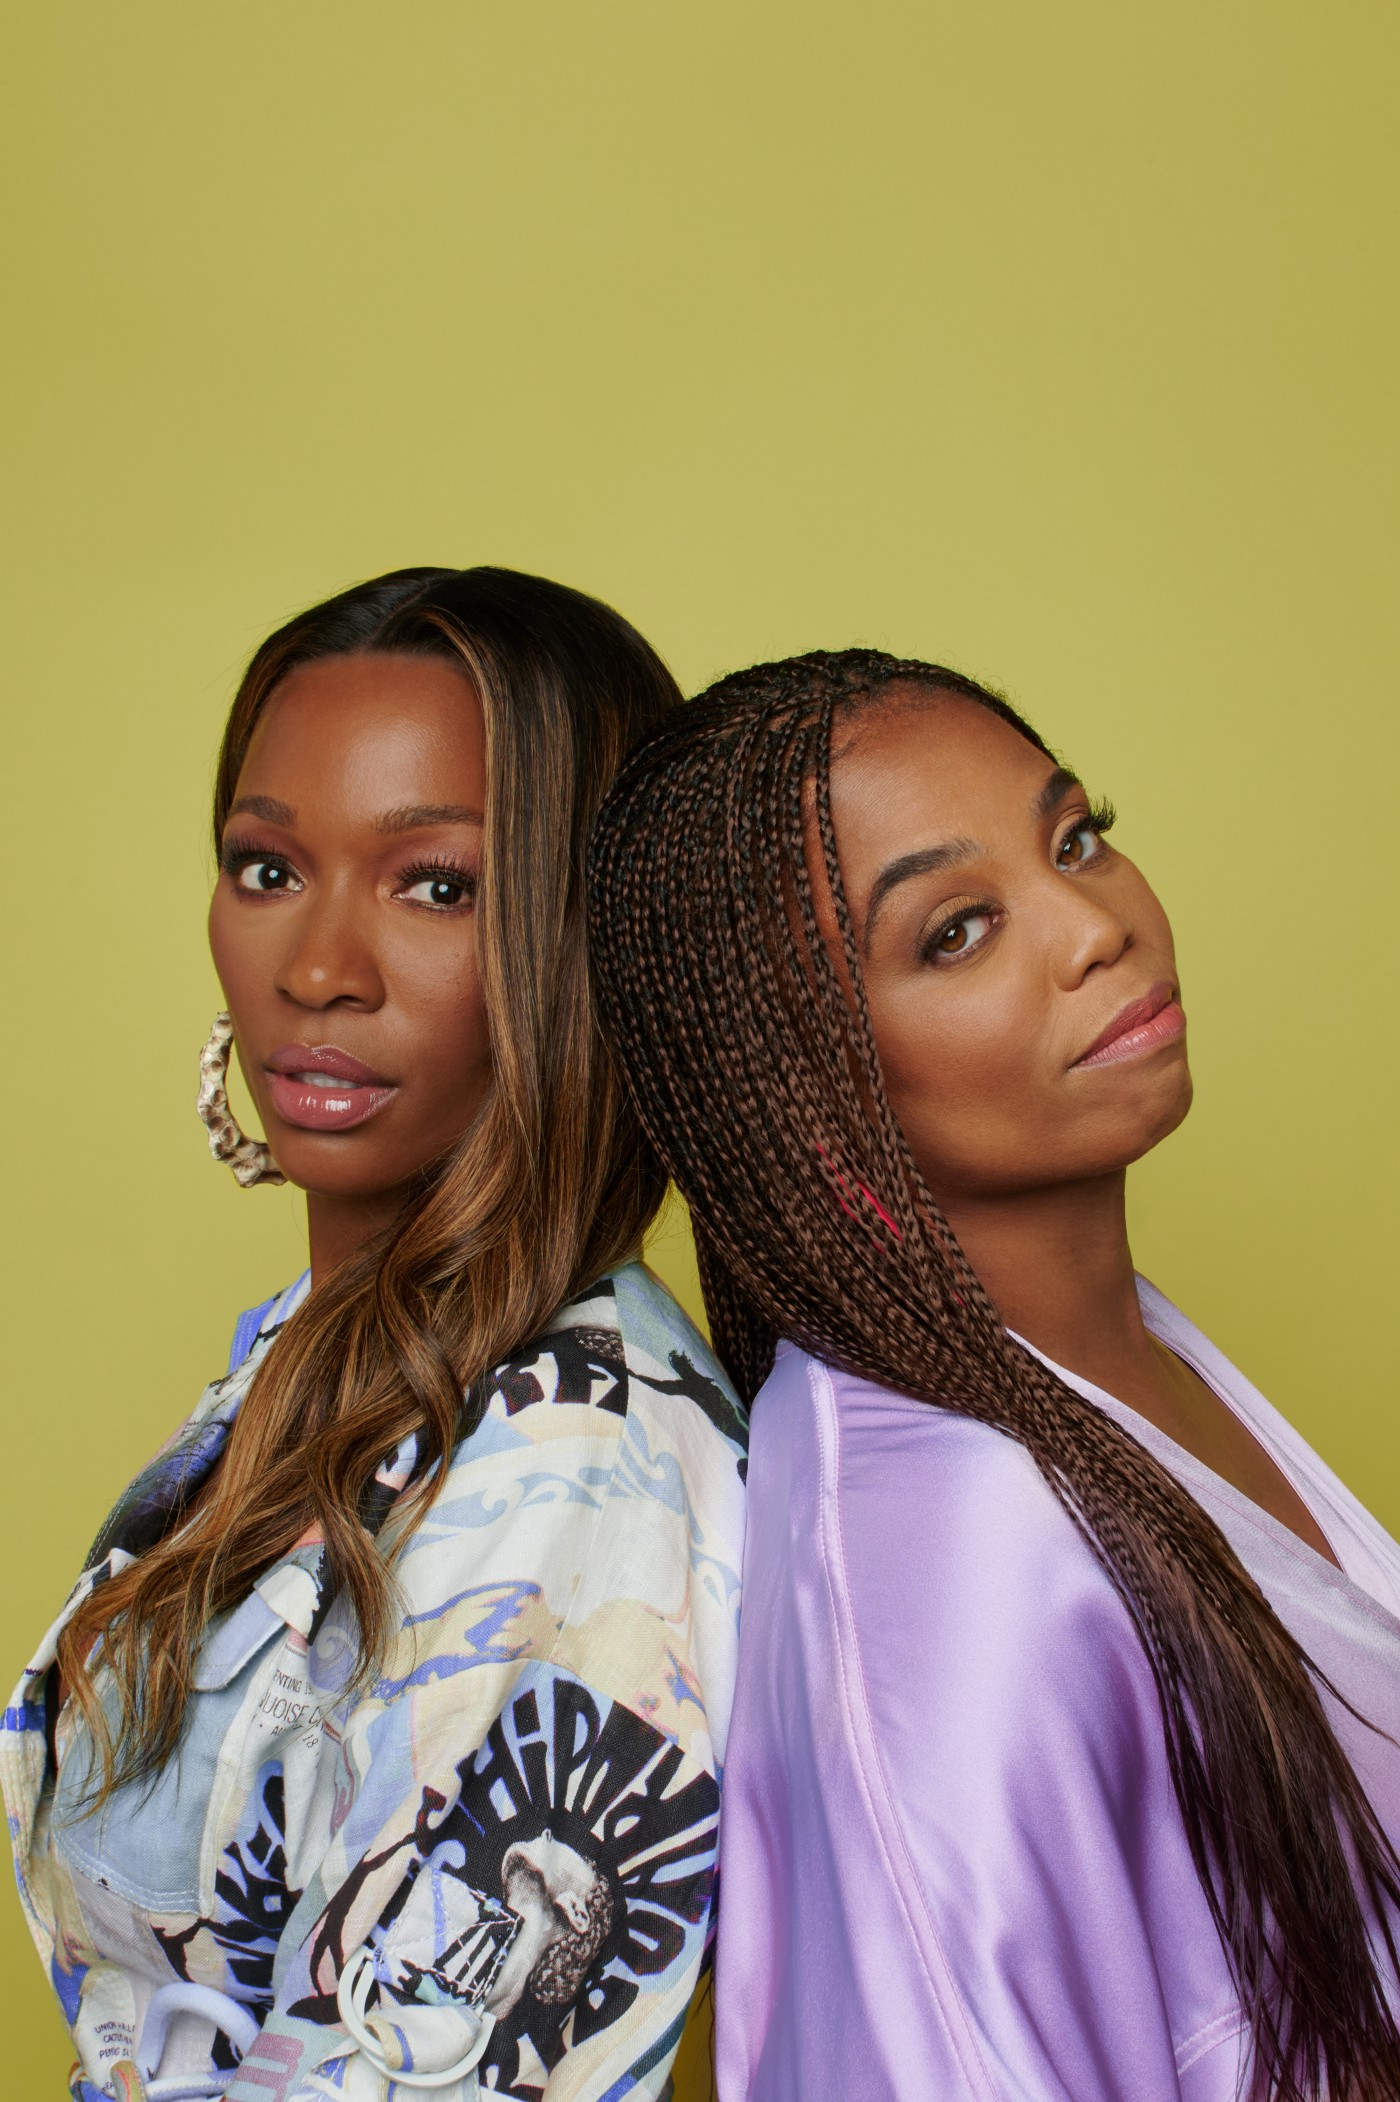 Closeup portrait photo of Jemele Hill and Cari Champion standing back-to-back.